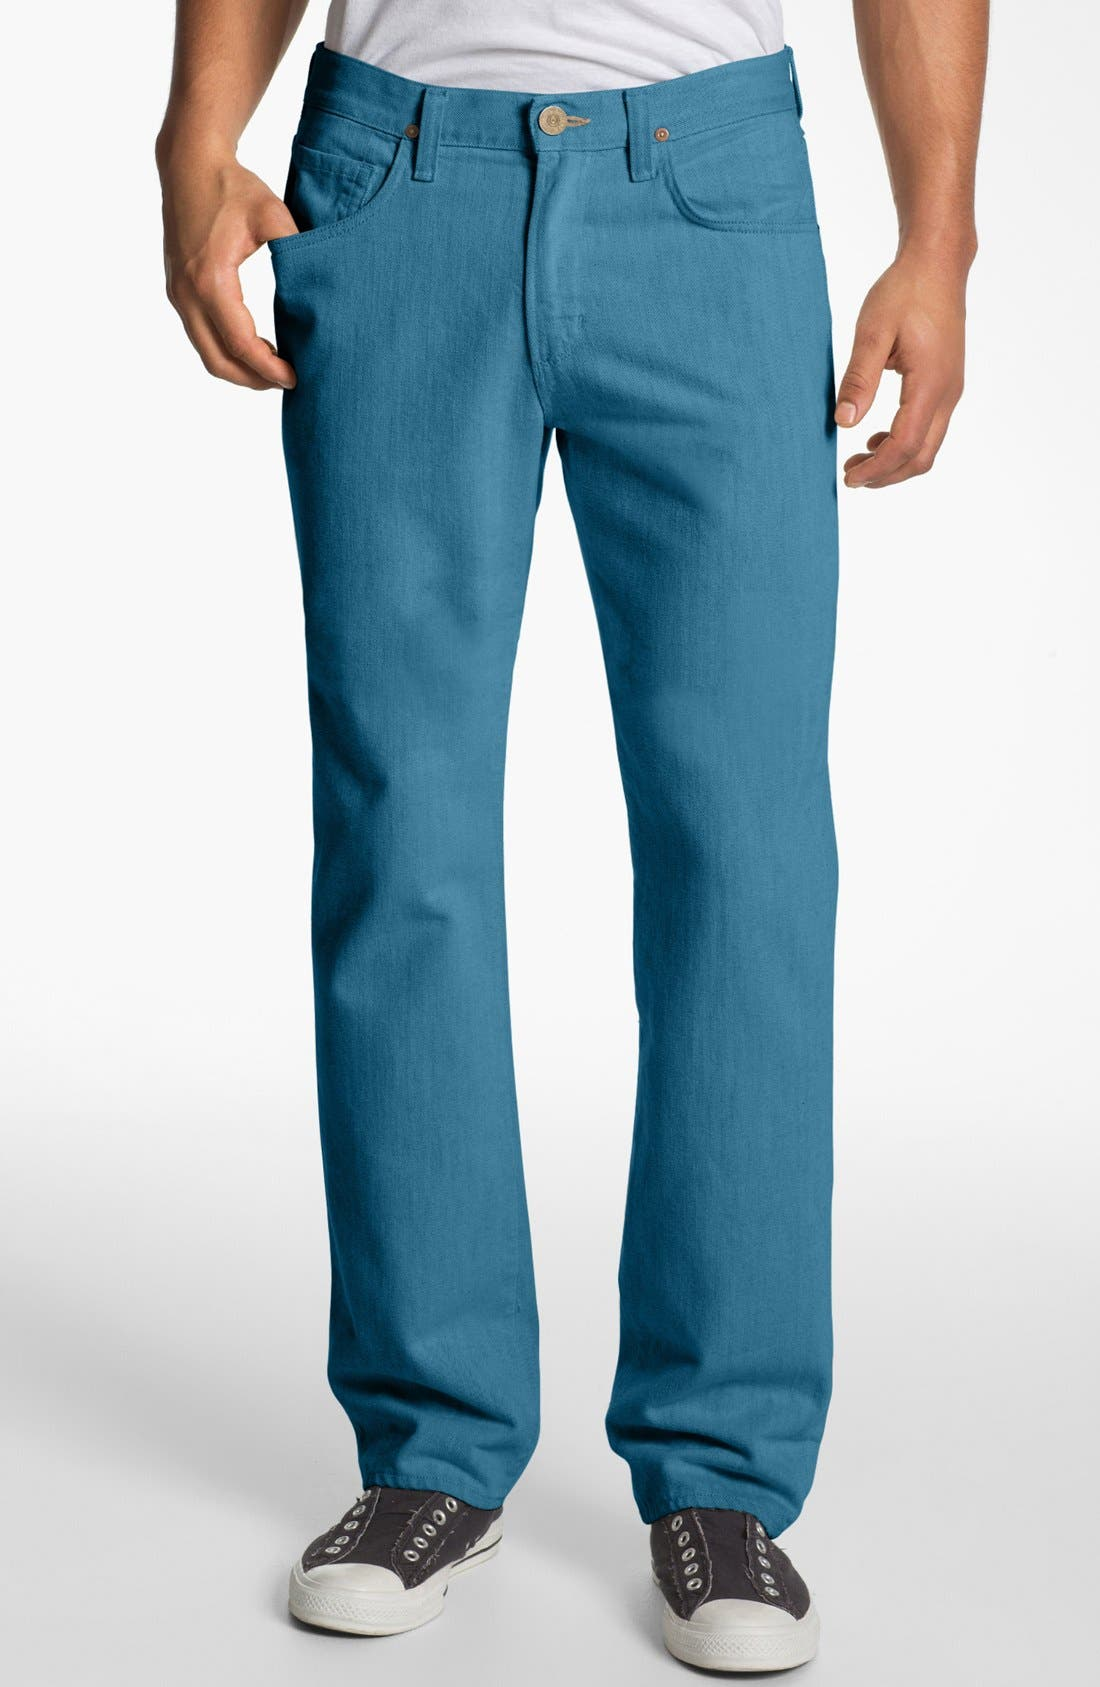 Alternate Image 1 Selected - Citizens of Humanity 'Sid' Straight Leg Jeans